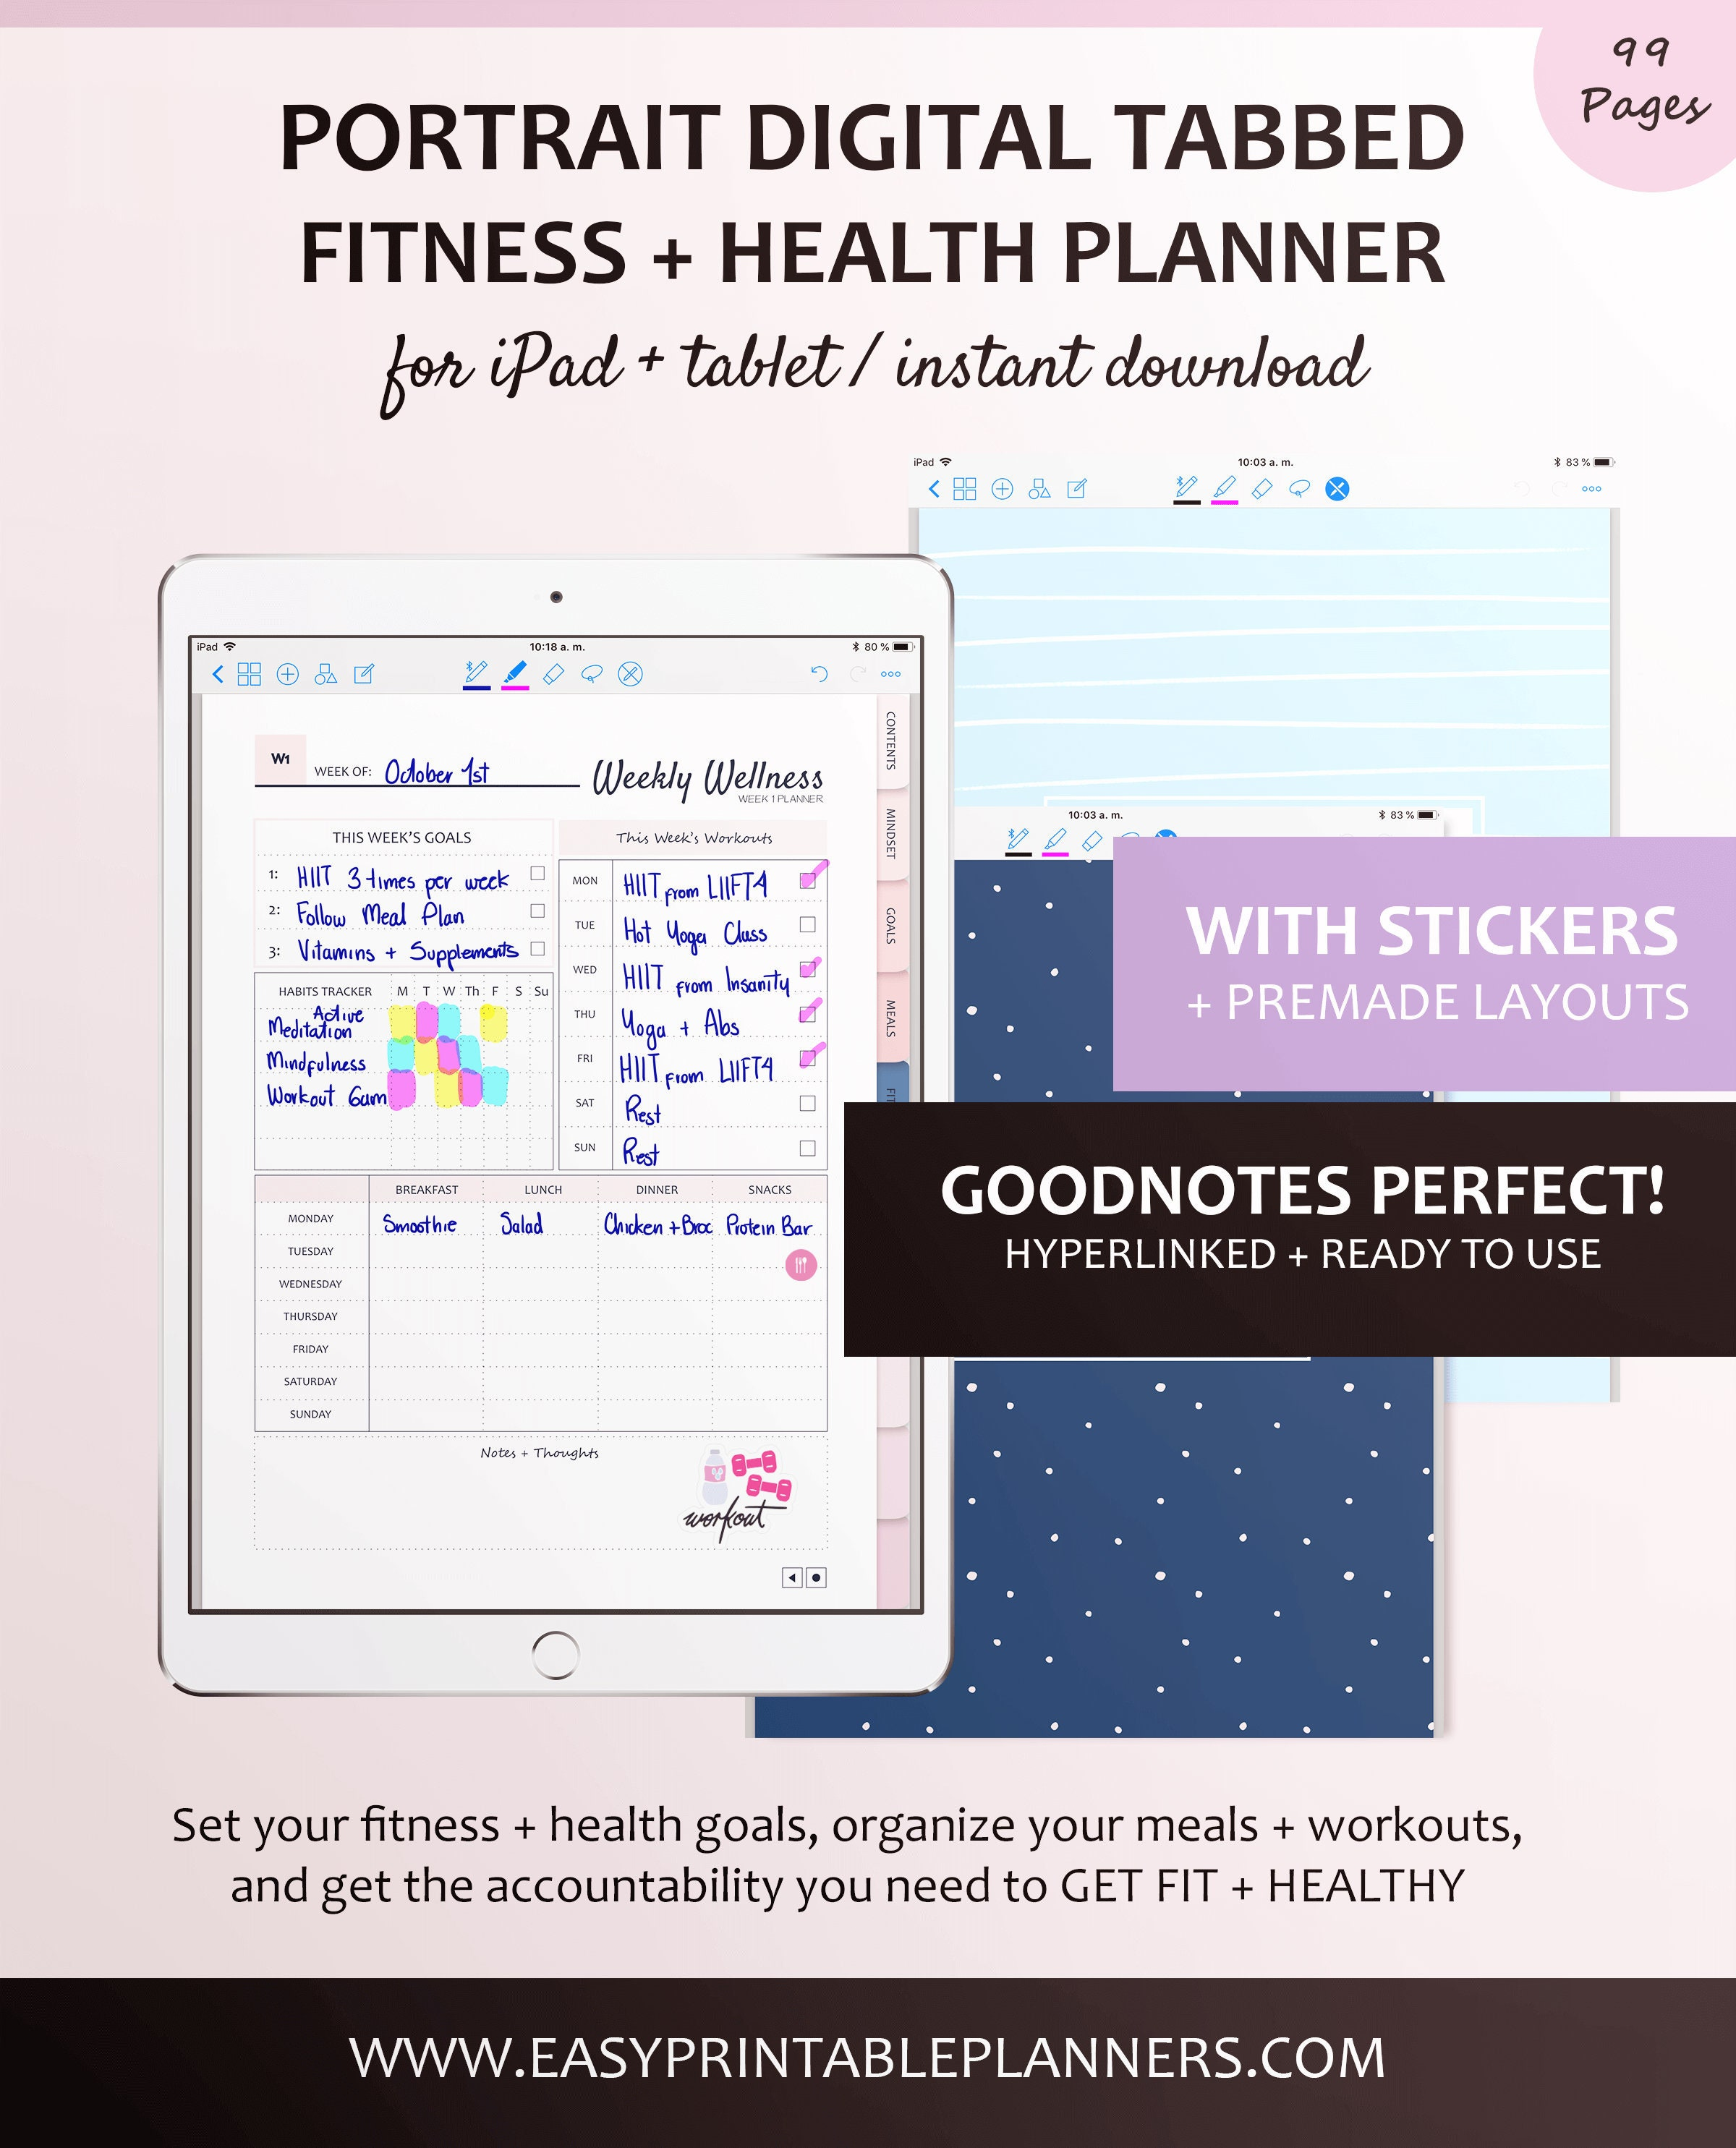 Digital Fitness Planner for Goodnotes with Stickers - Plan your Meals,  Workouts, Recipes, and Track your Goals and Weight, from your iPad